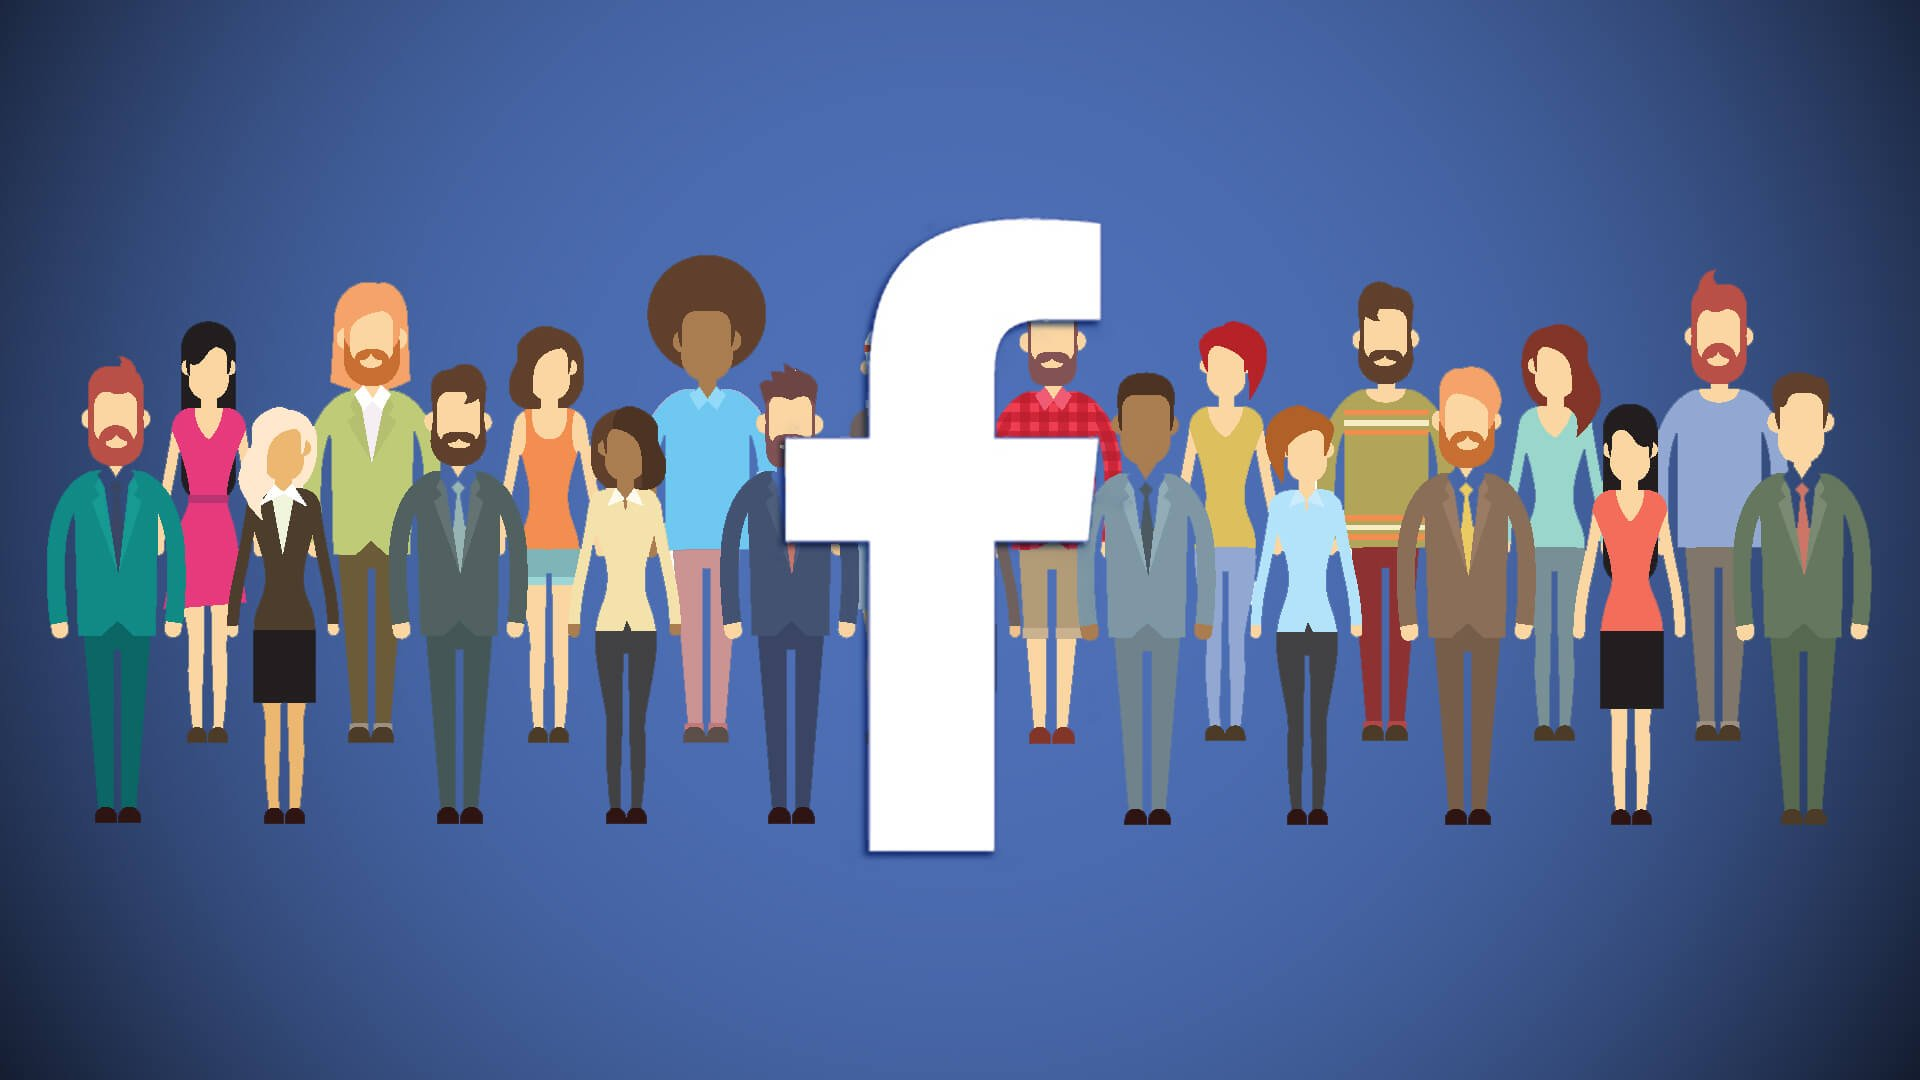 facebook, facebook support, facebook xeberleri, mark zuckerberg, mark zuckerberg facebook